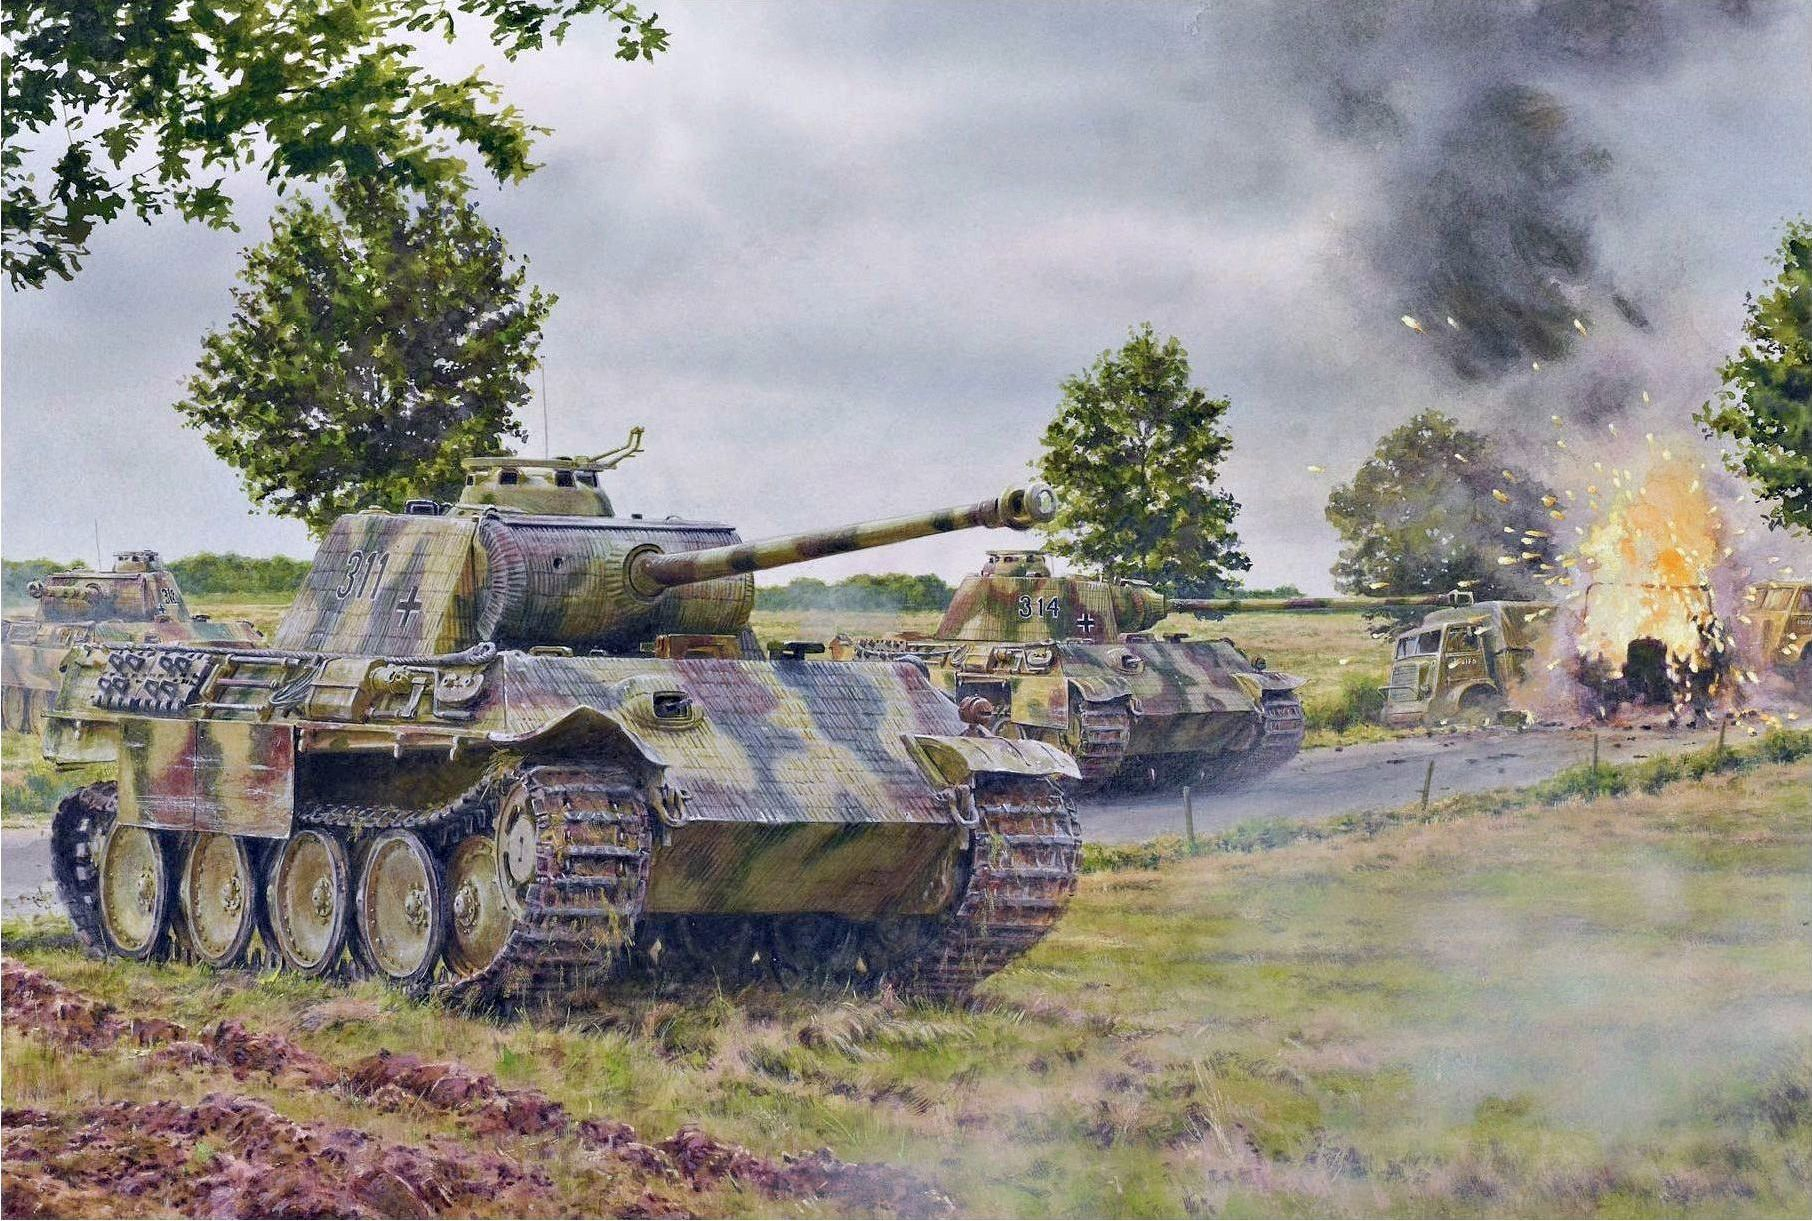 Panther Destroyed An Allied Column During The Course Of Operation Market Garden Courtesy Of